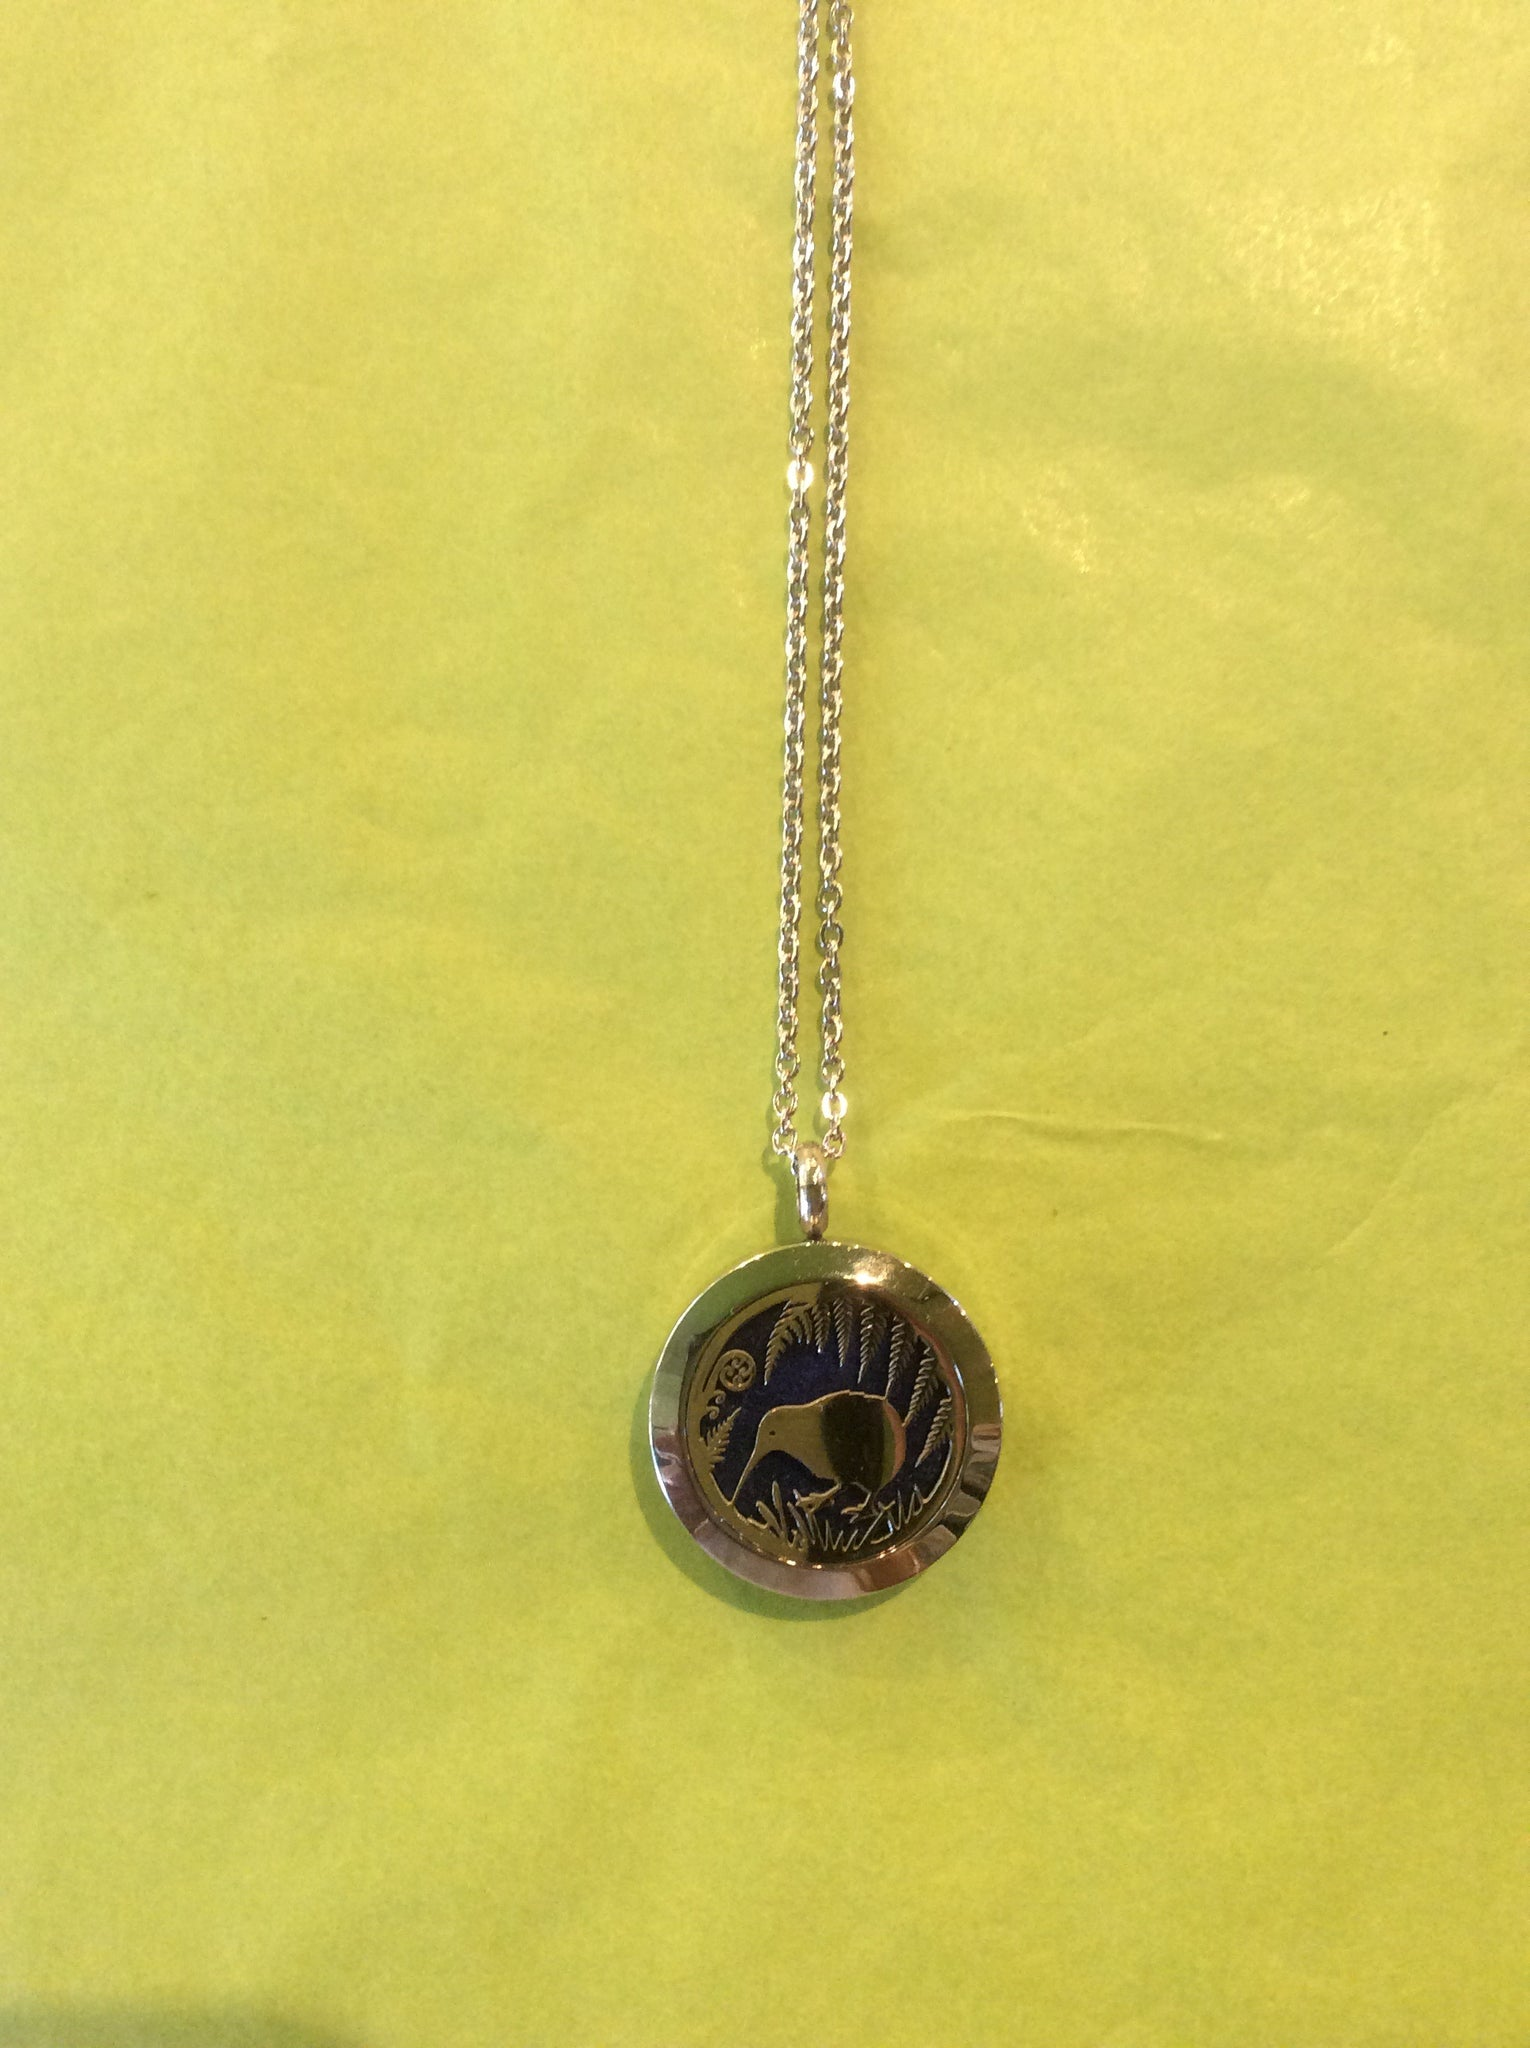 Kiwi Aromatherapy Locket 25 mm